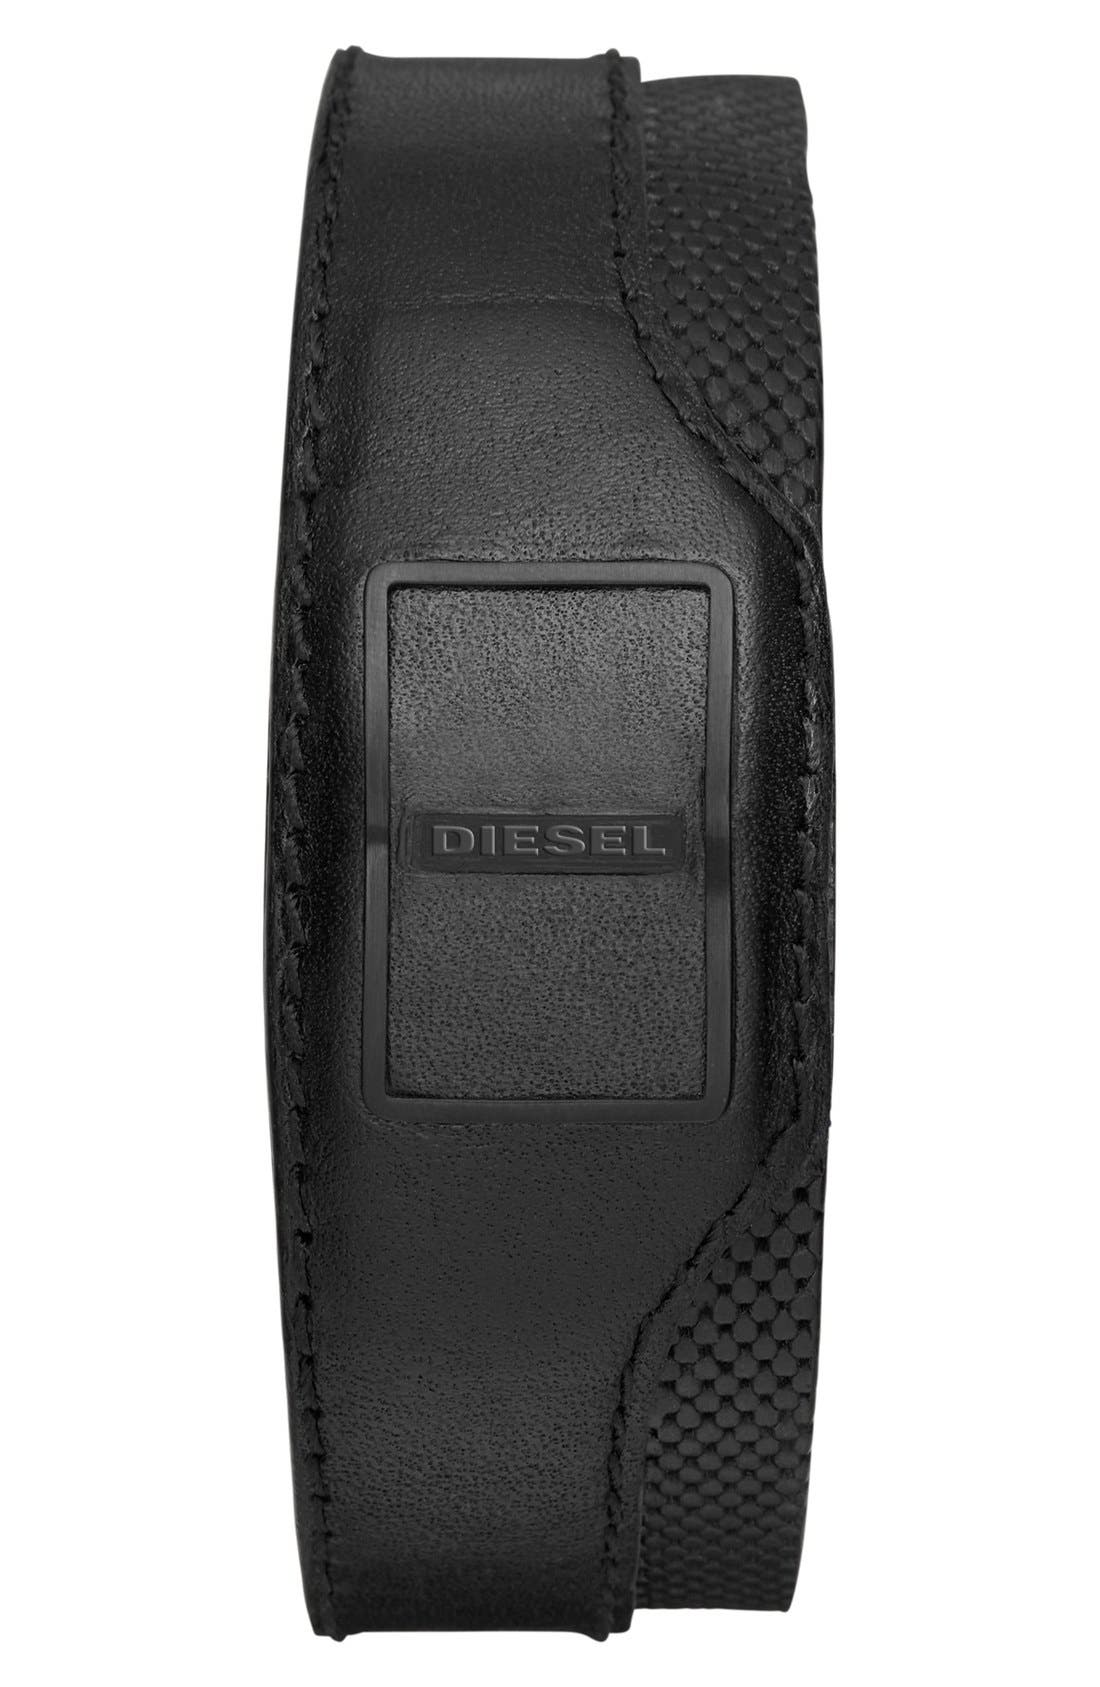 DIESEL® Leather Cuff Activity Tracker